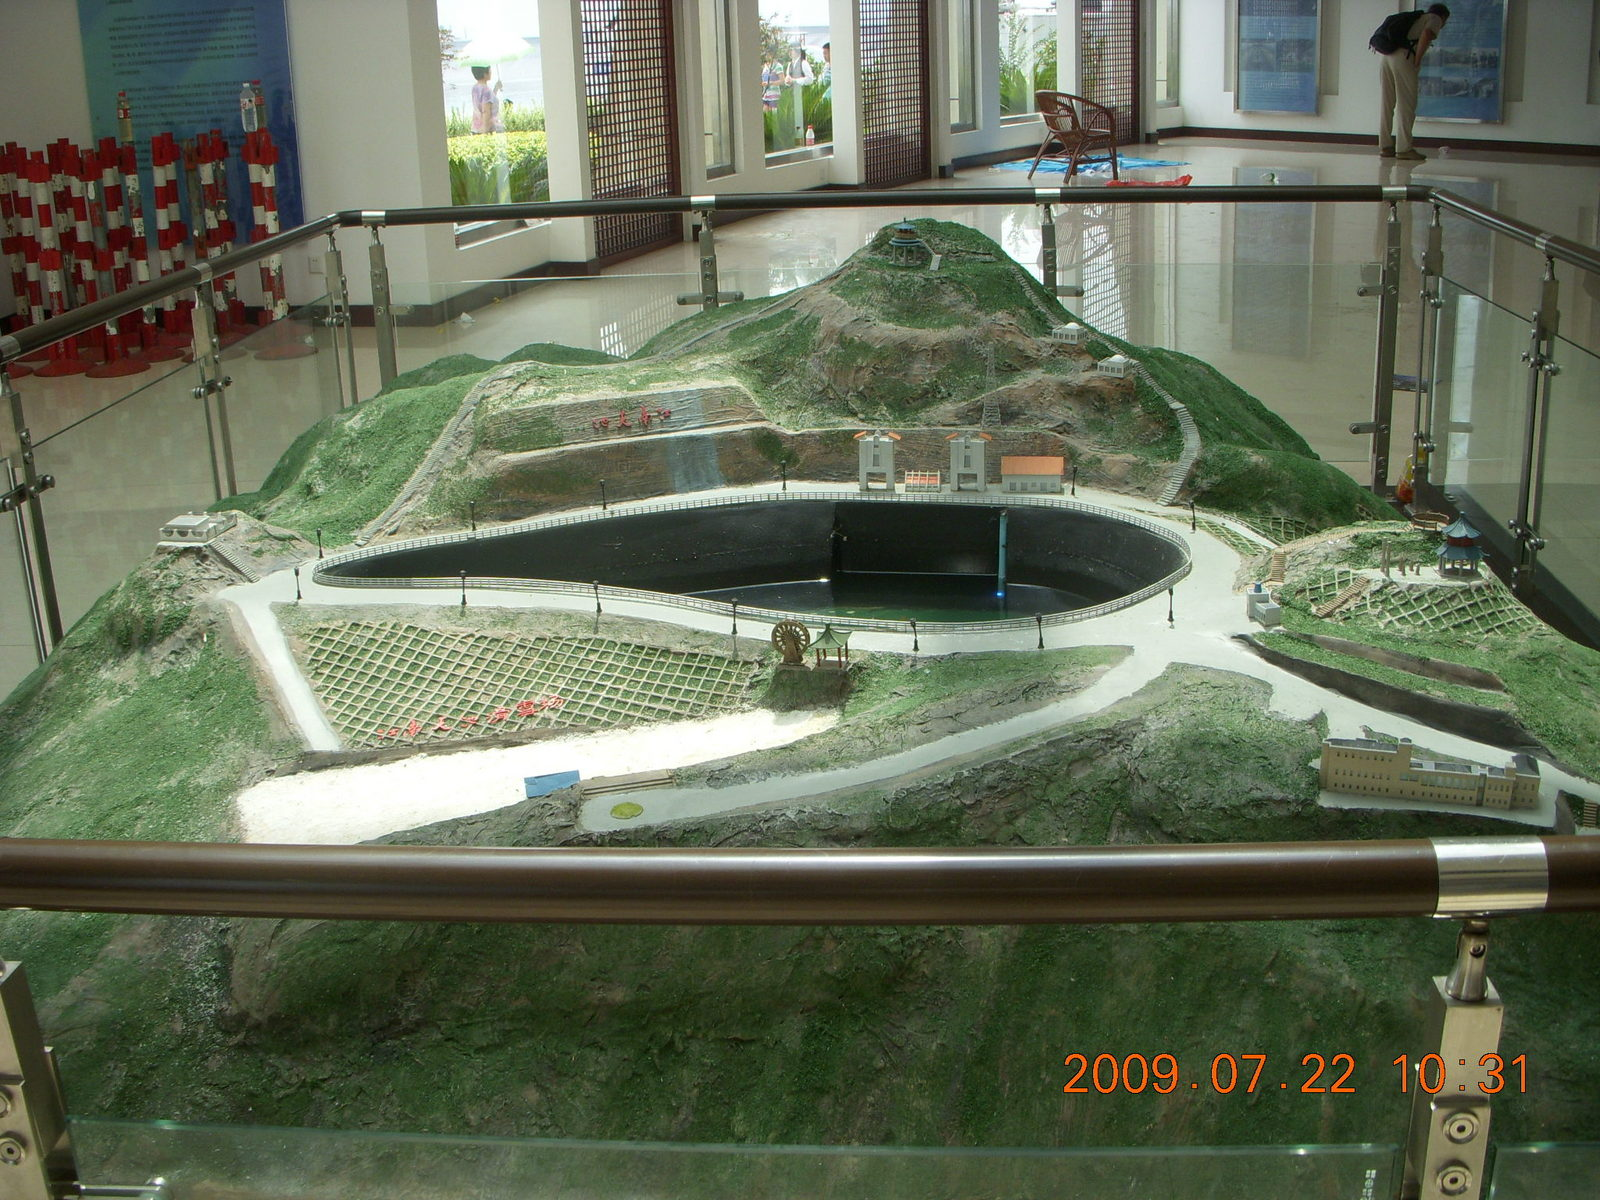 China eclipse - Anji eclipse site - model in building